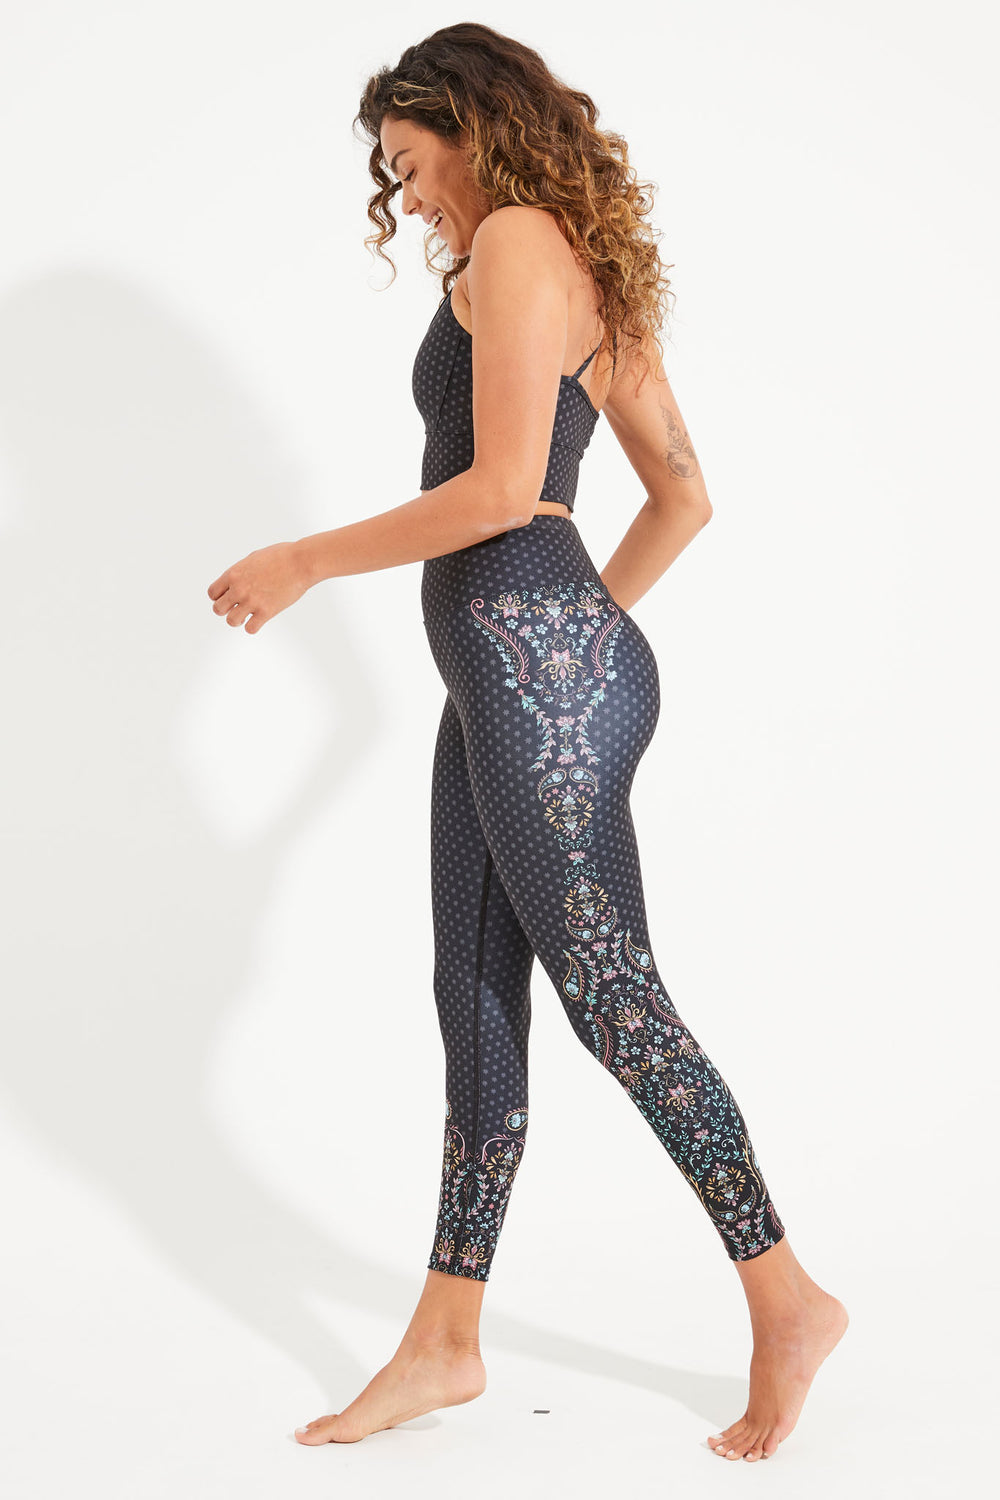 Bohemian Soul Recycled High Waist Printed Legging - 7/8